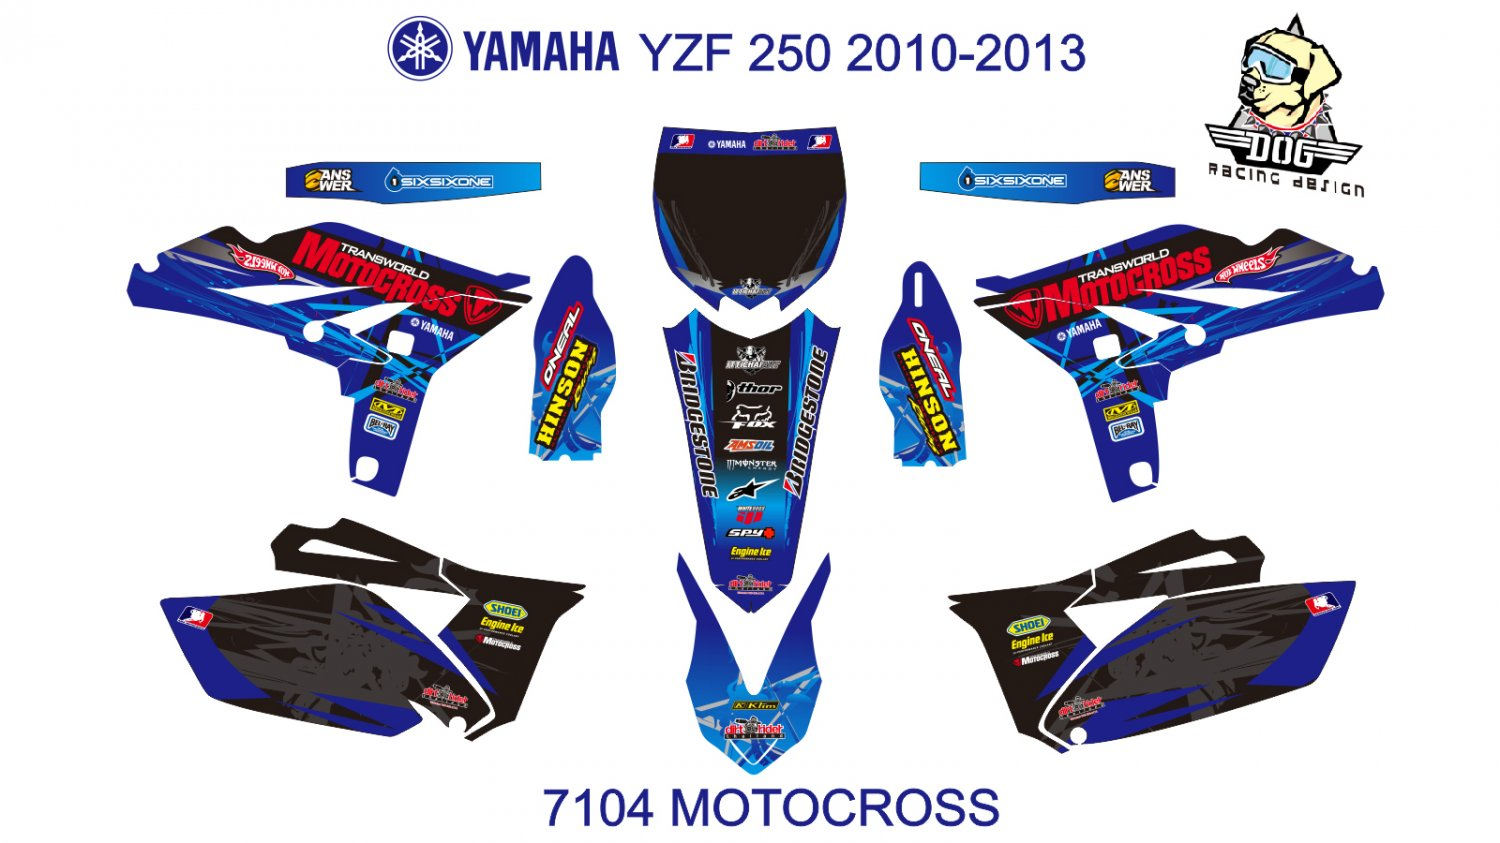 YAMAHA YZF 250 2010-2013 GRAPHIC DECAL KIT CODE.7104